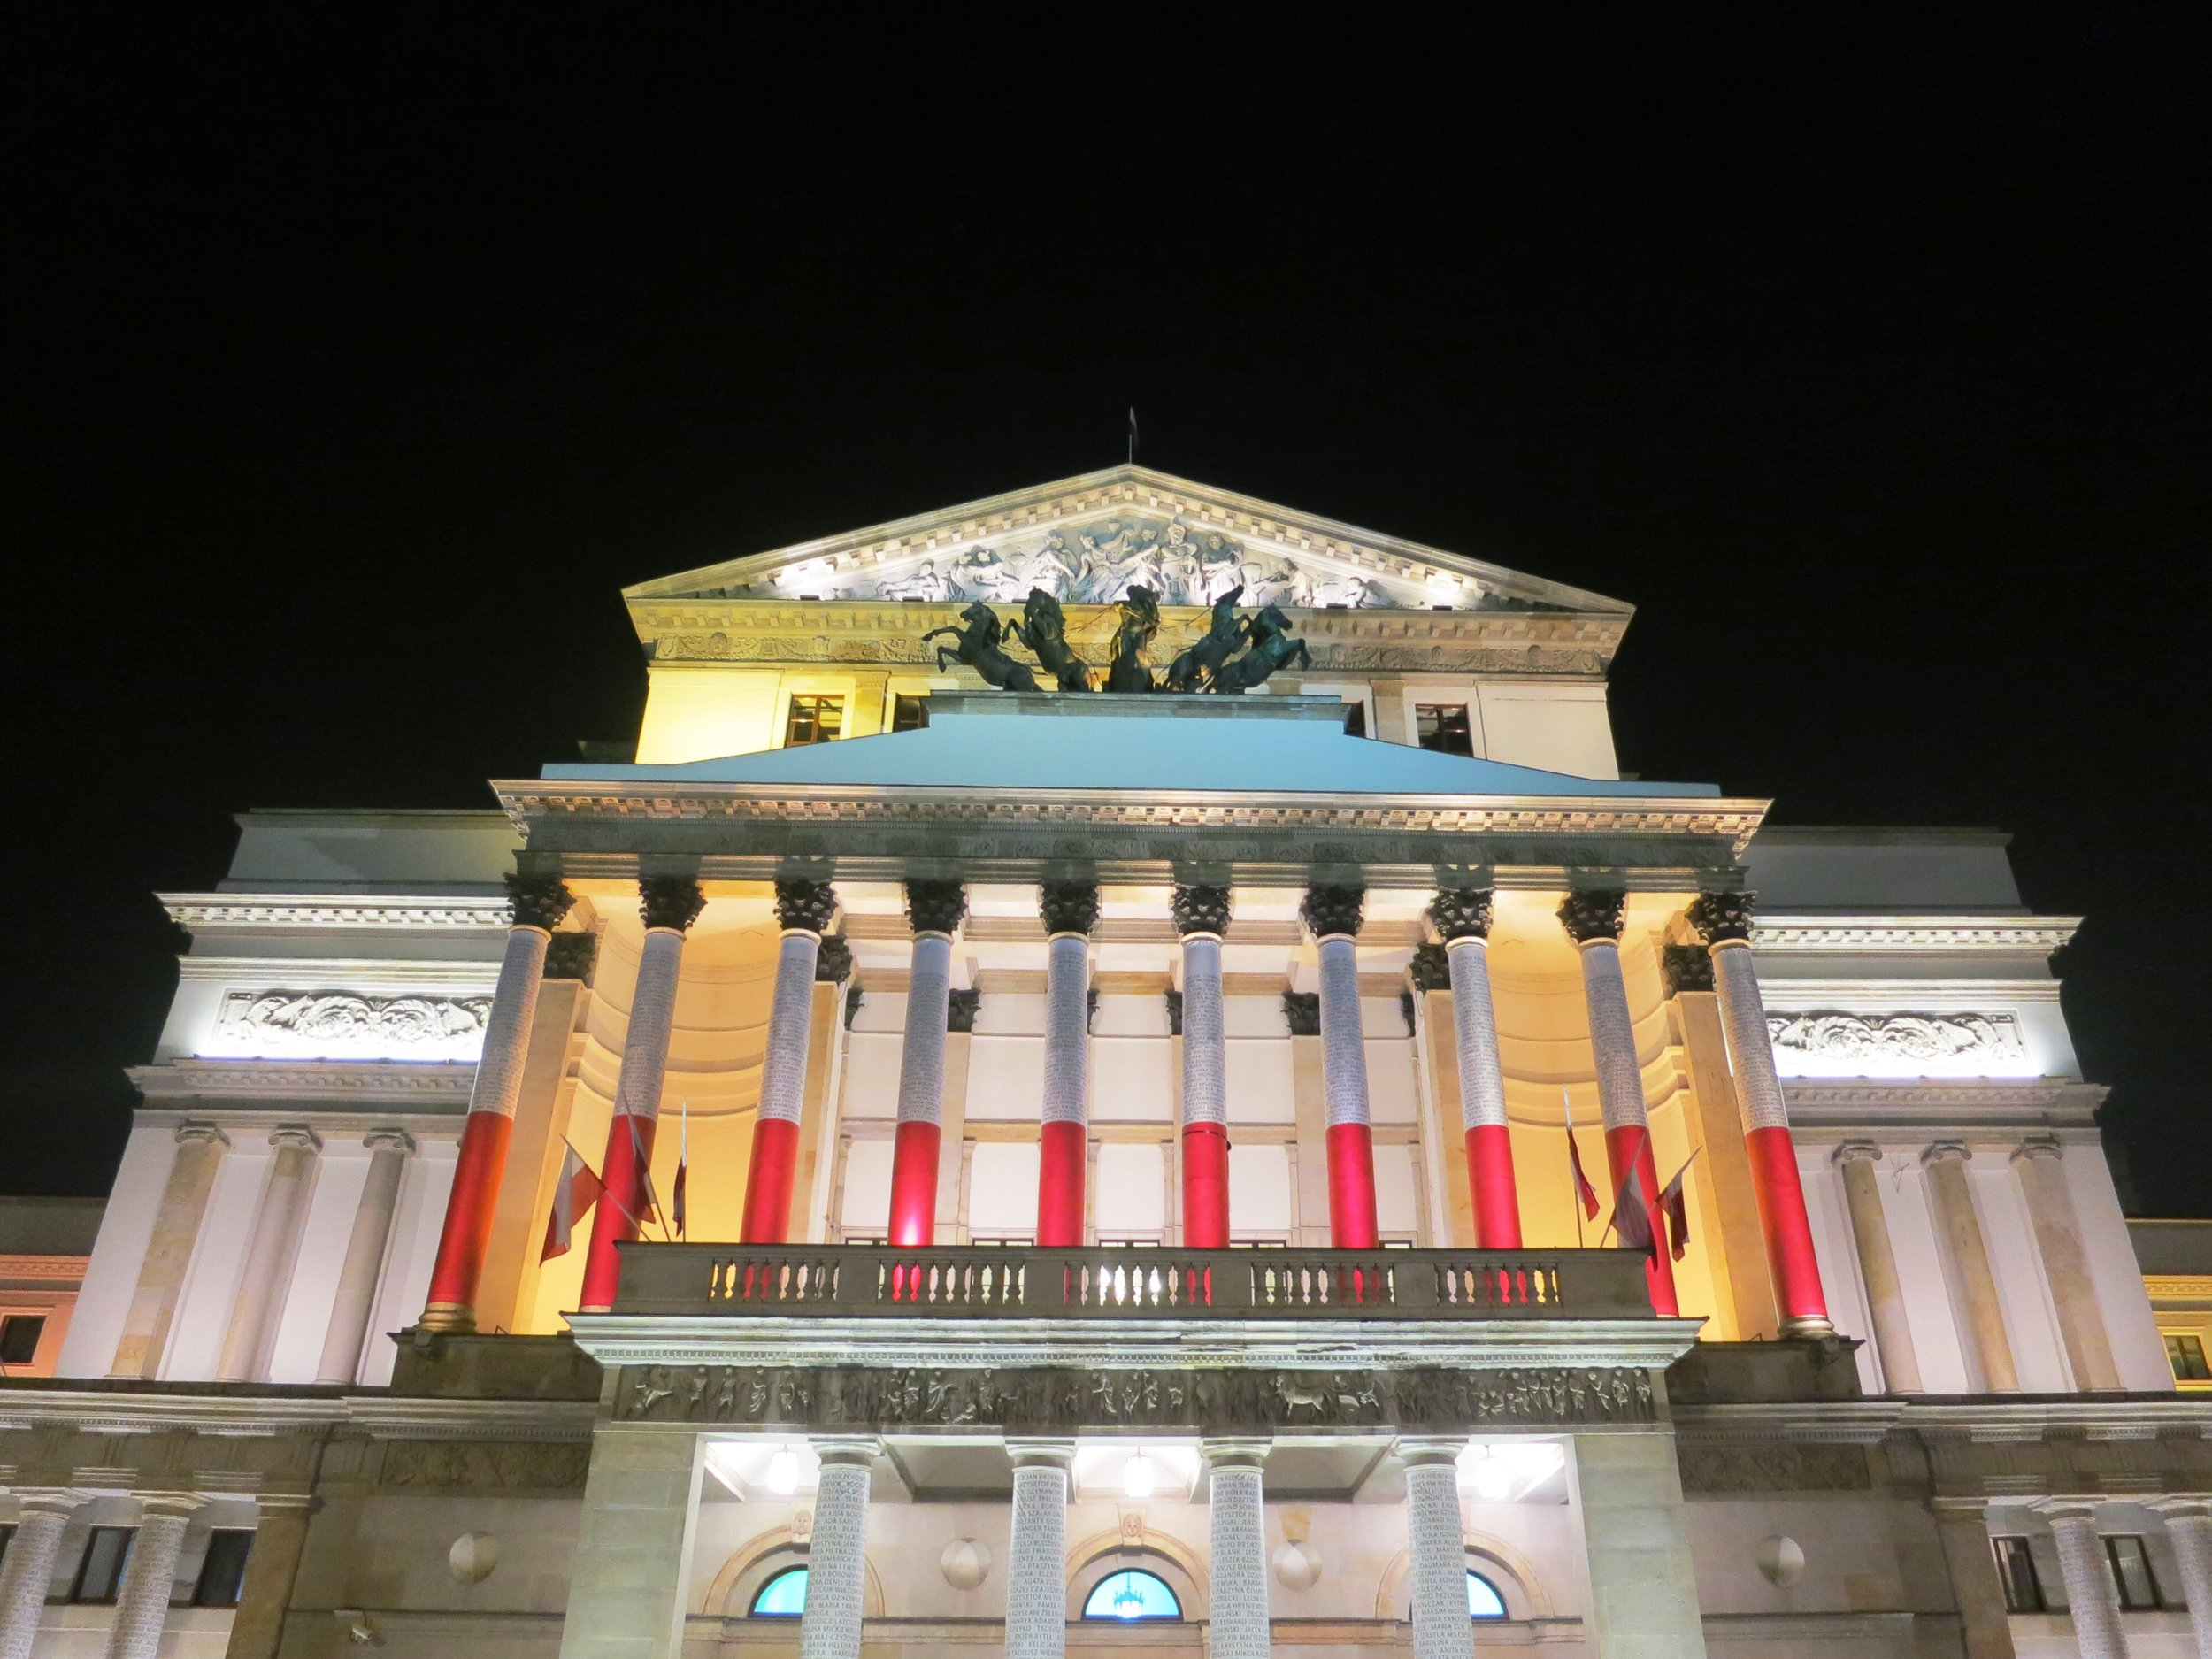 National building in Warsaw, Poland decorated for Independence Day November 11, 2018